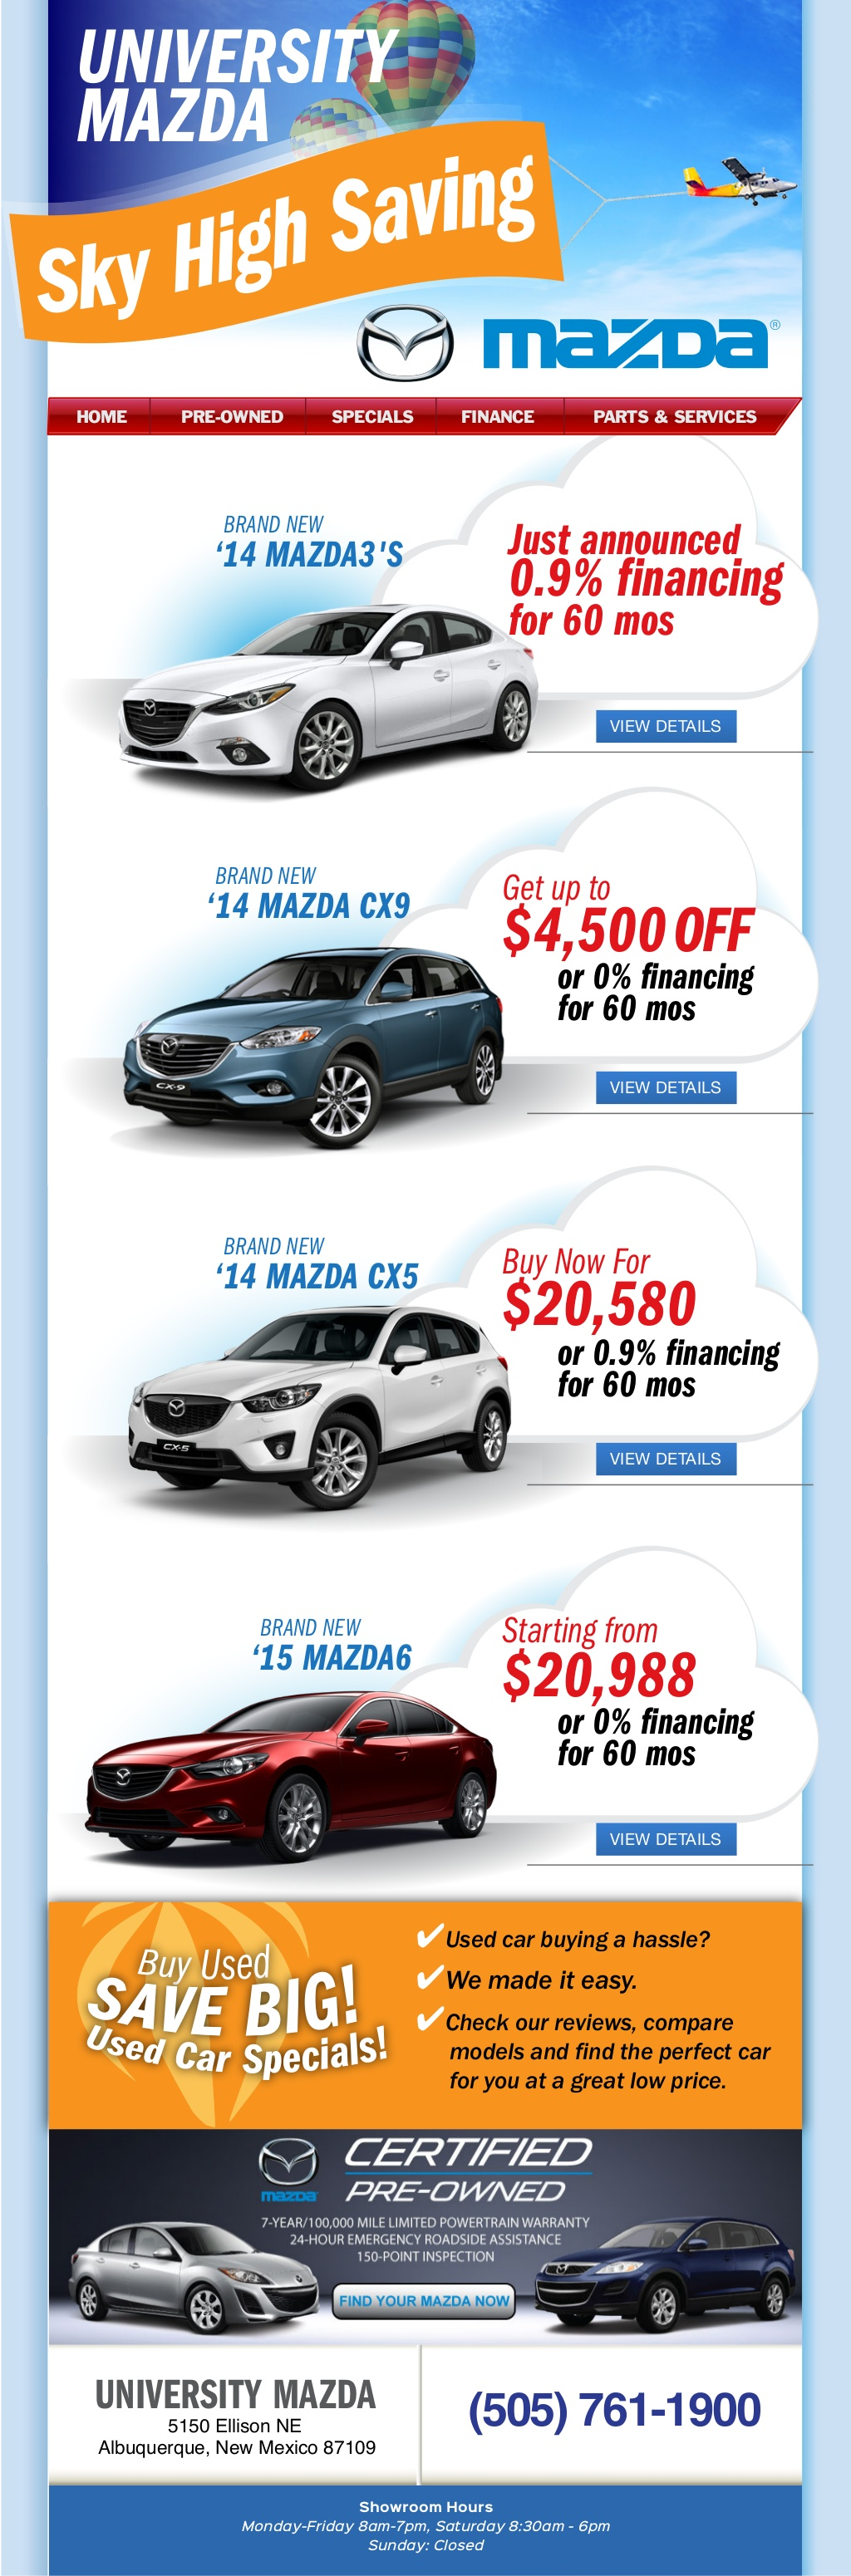 University Mazda Market Sky High Savings Dealership in Albuquerque